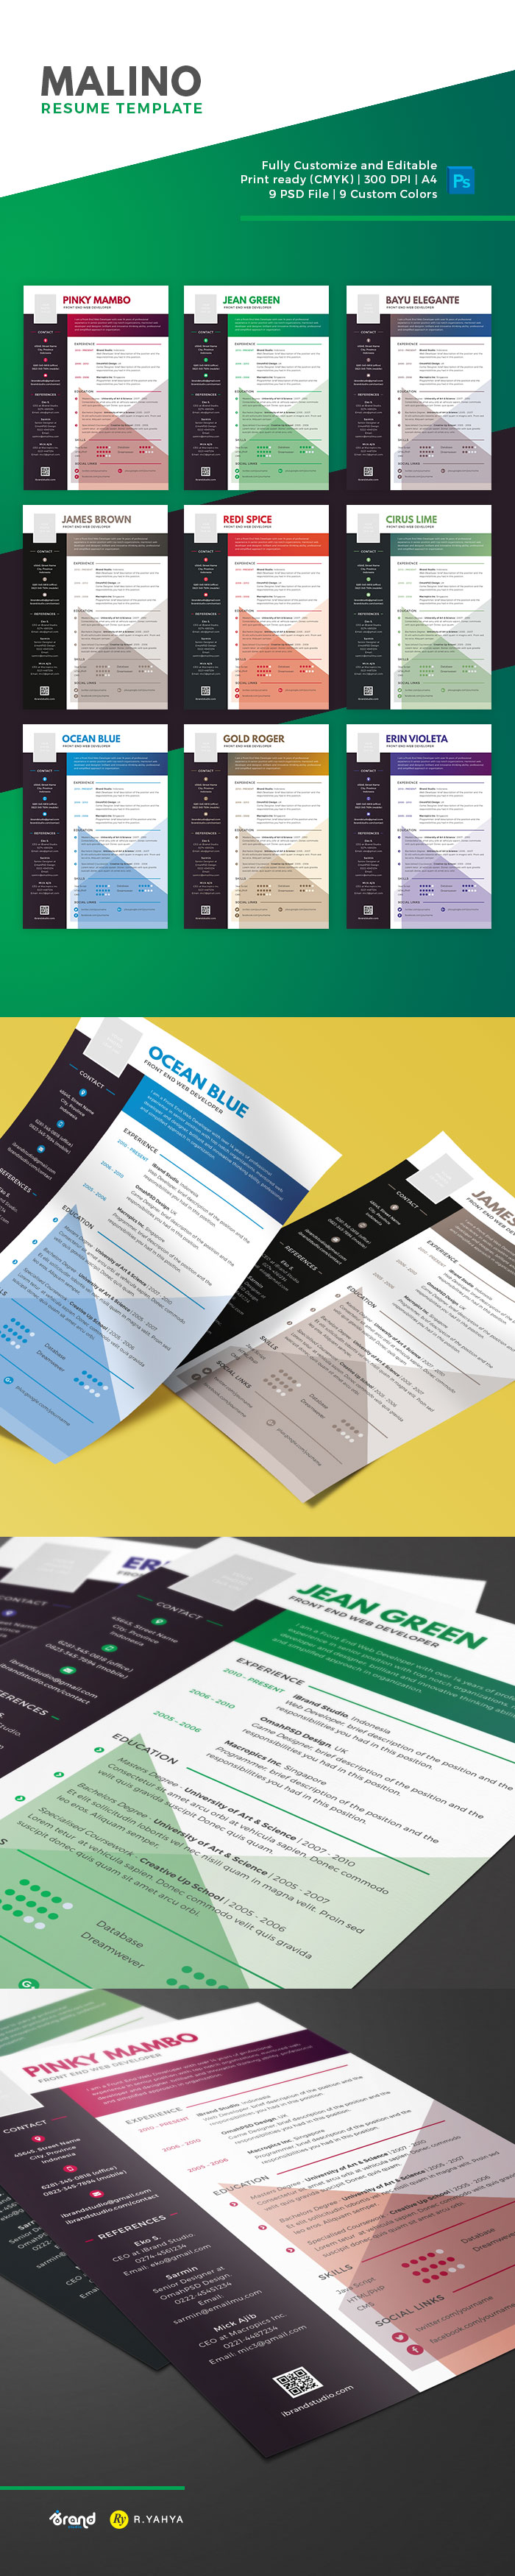 Free Malino Resume Psd Template  Colors  Template And Psd Templates